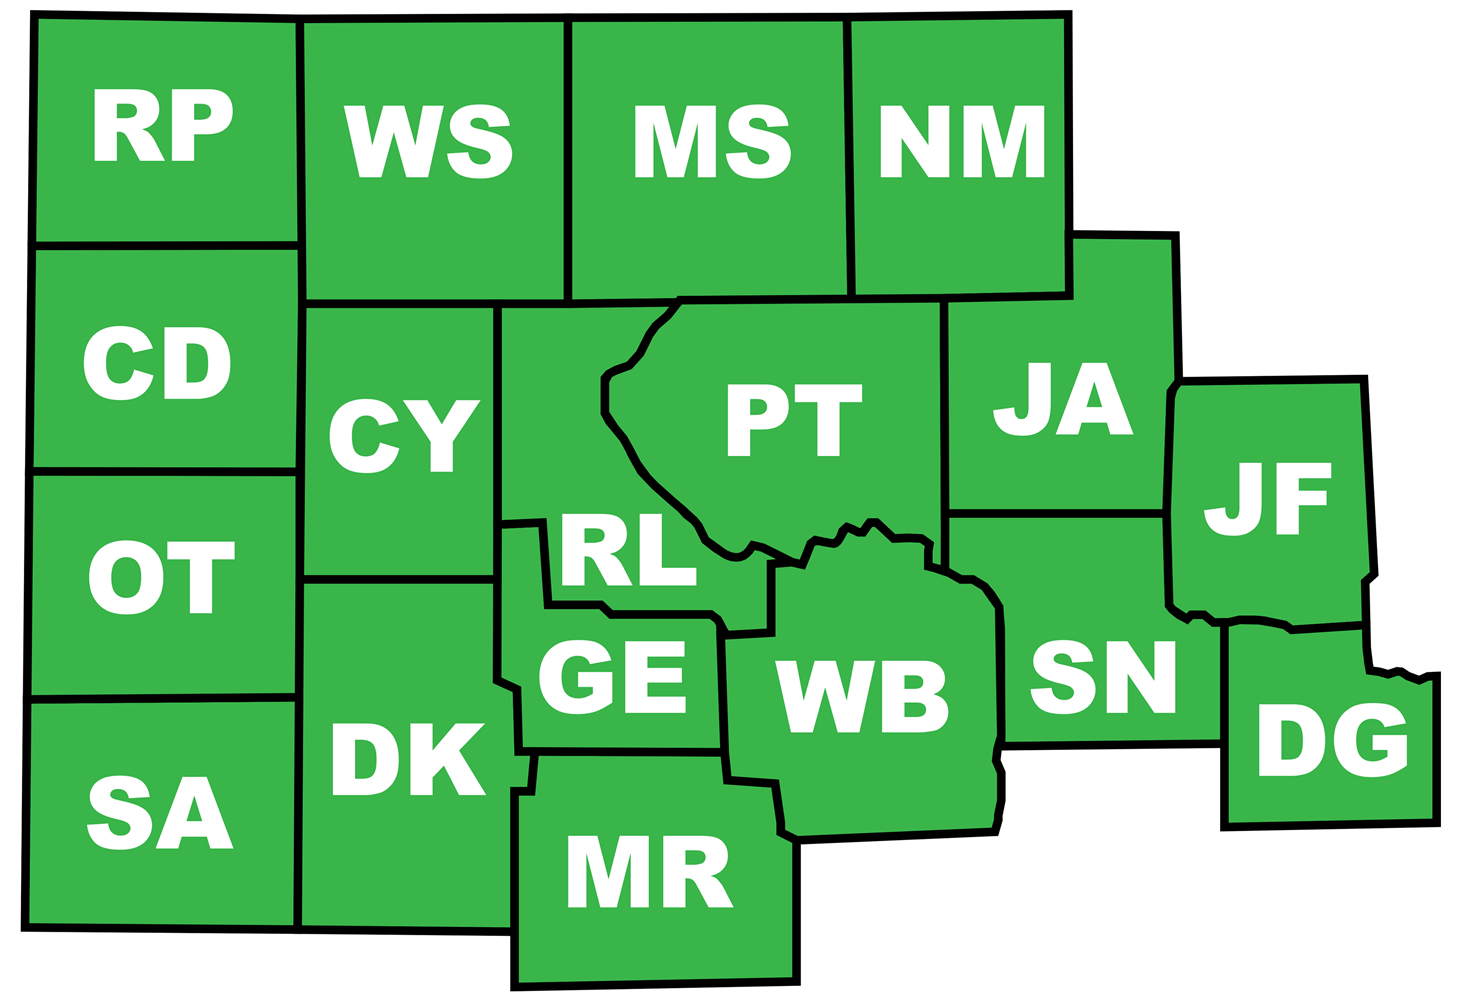 District_3_labeled